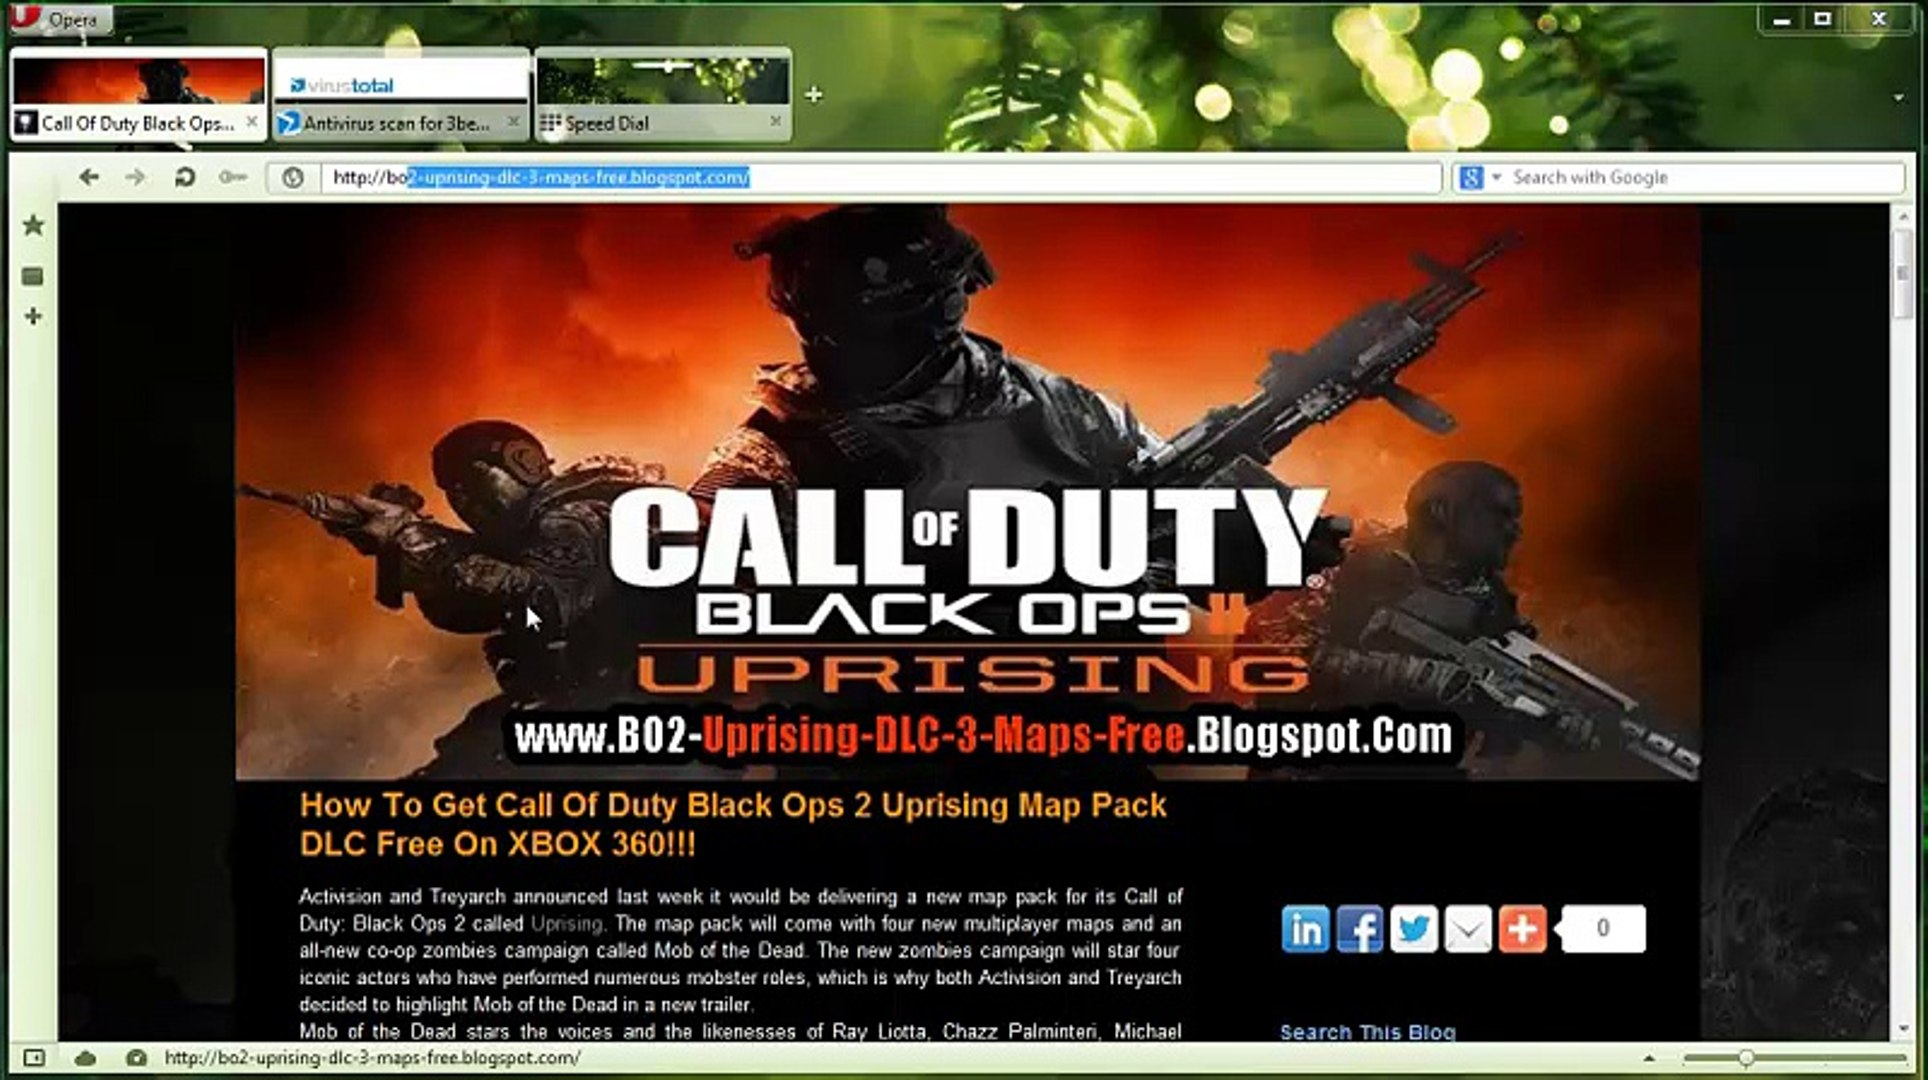 How To Unlock Install Black Ops 2 Uprising Map Pack Dlc Free